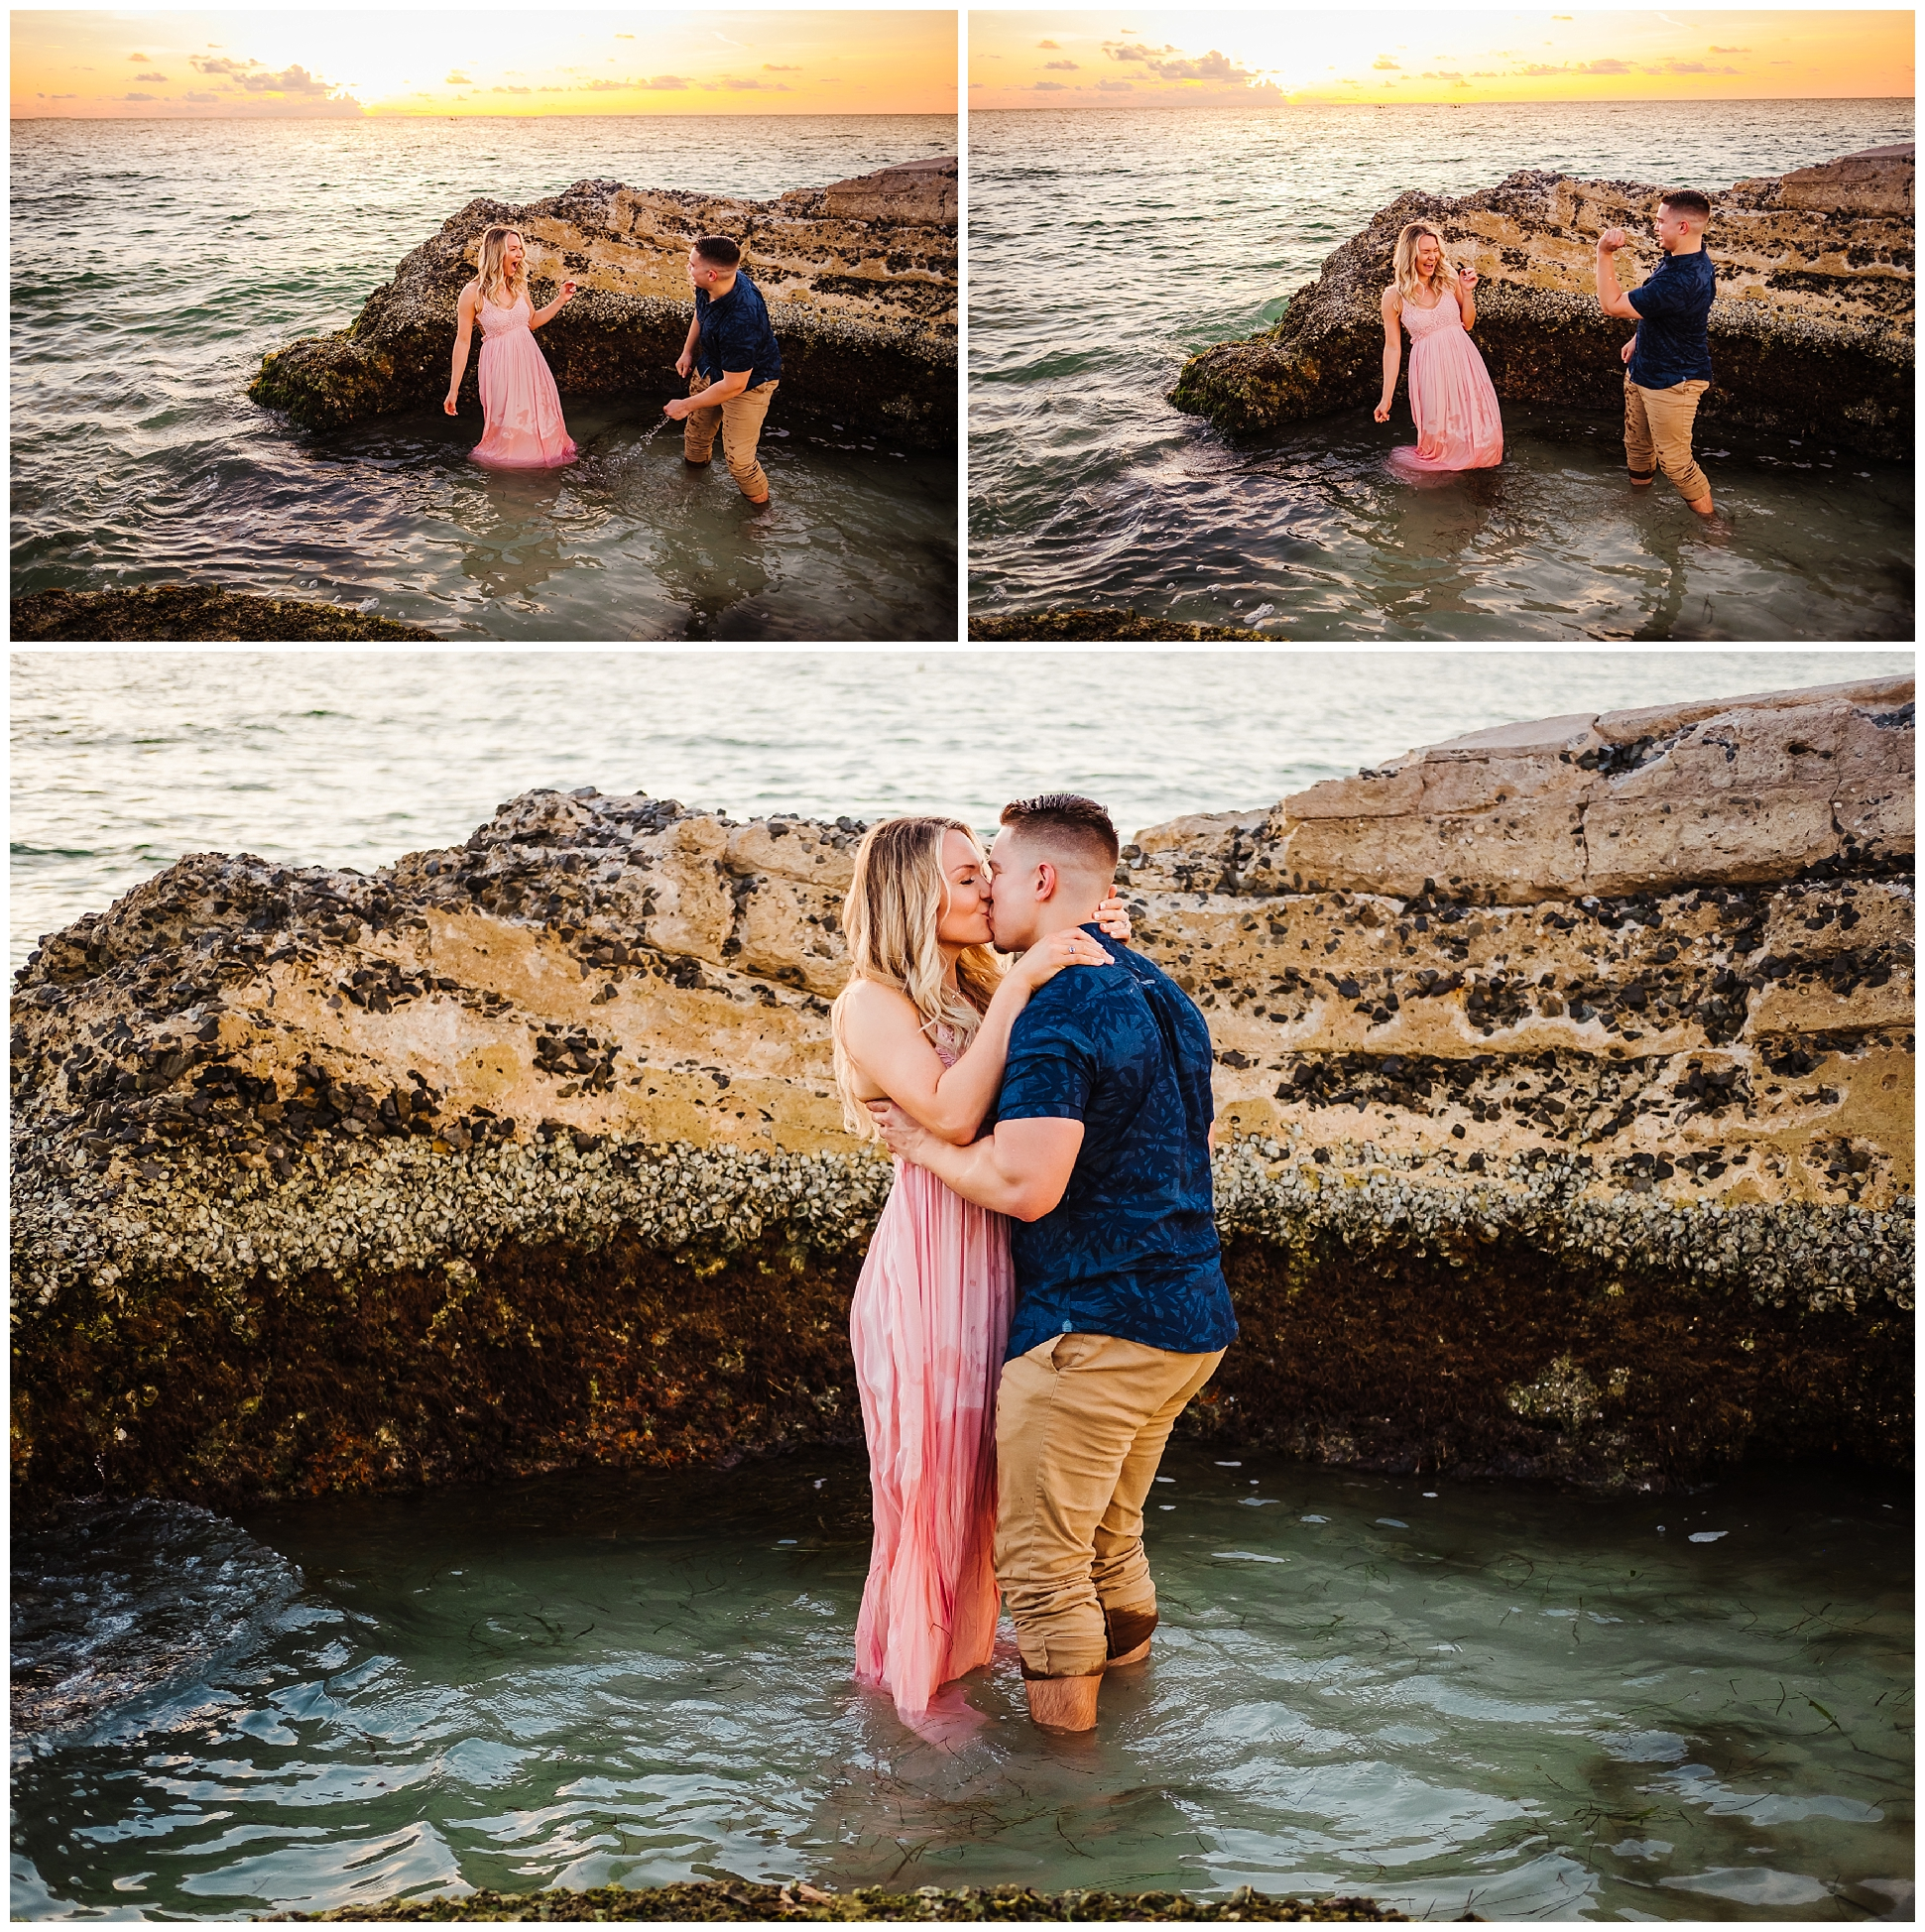 fort-desoto-engagement-photos-florida-beach-sunset_0239.jpg